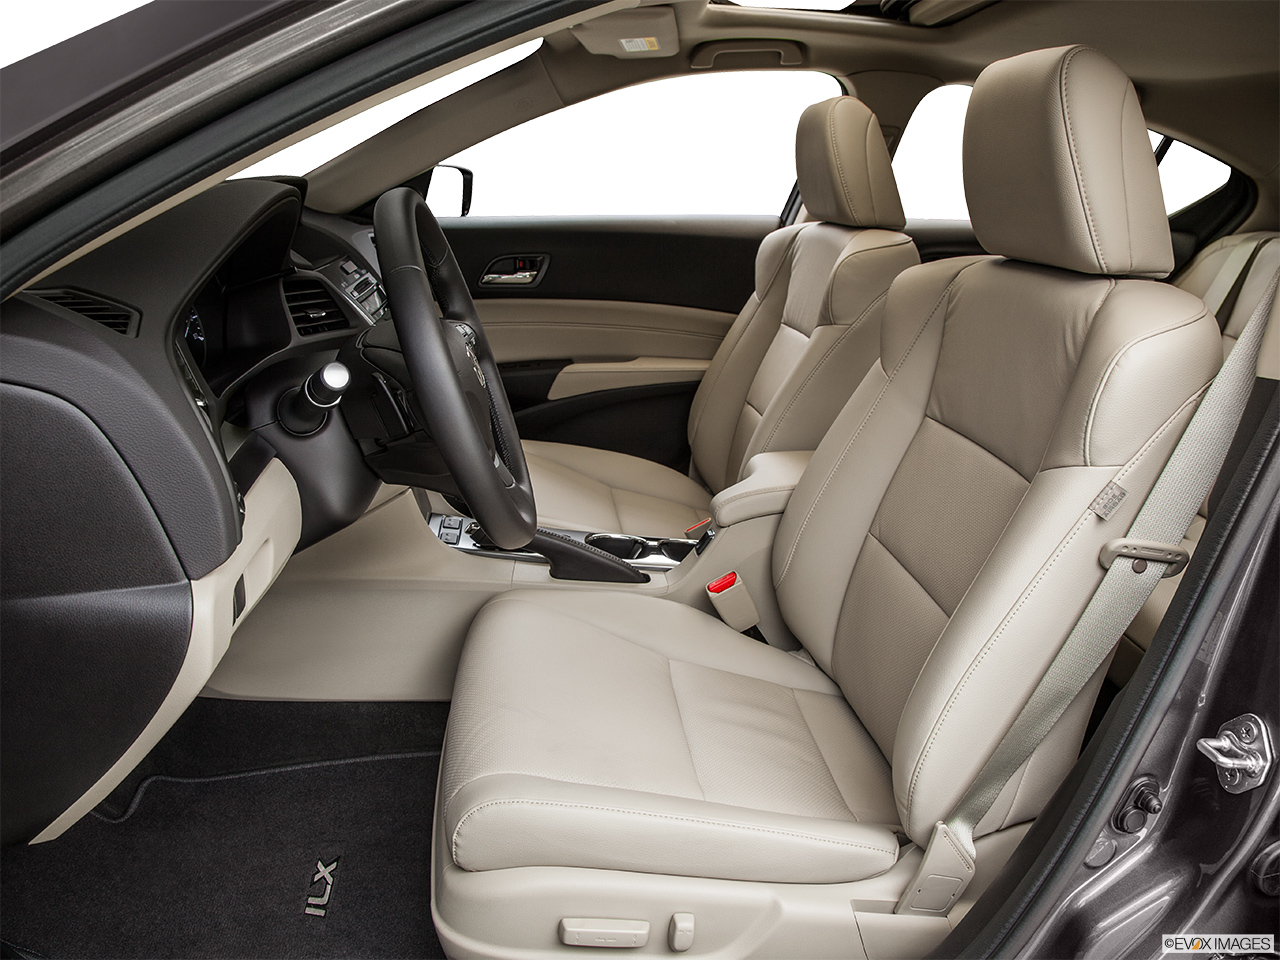 2014 Acura ILX Hybrid Base Front seats from Drivers Side.